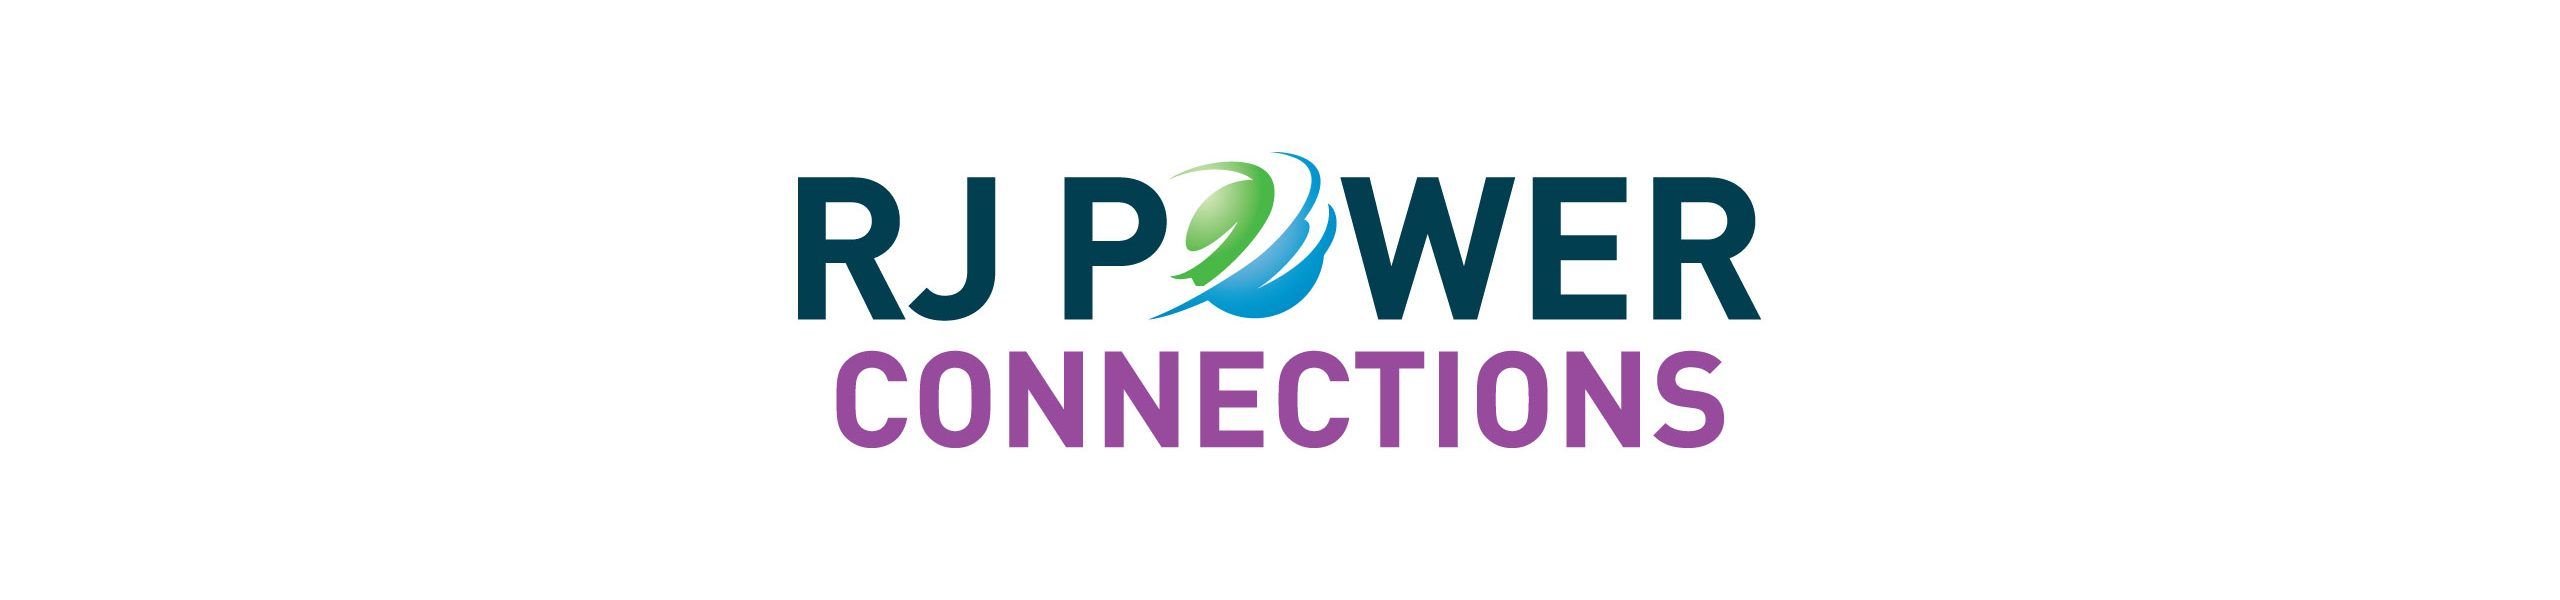 RJPOWER_Connections